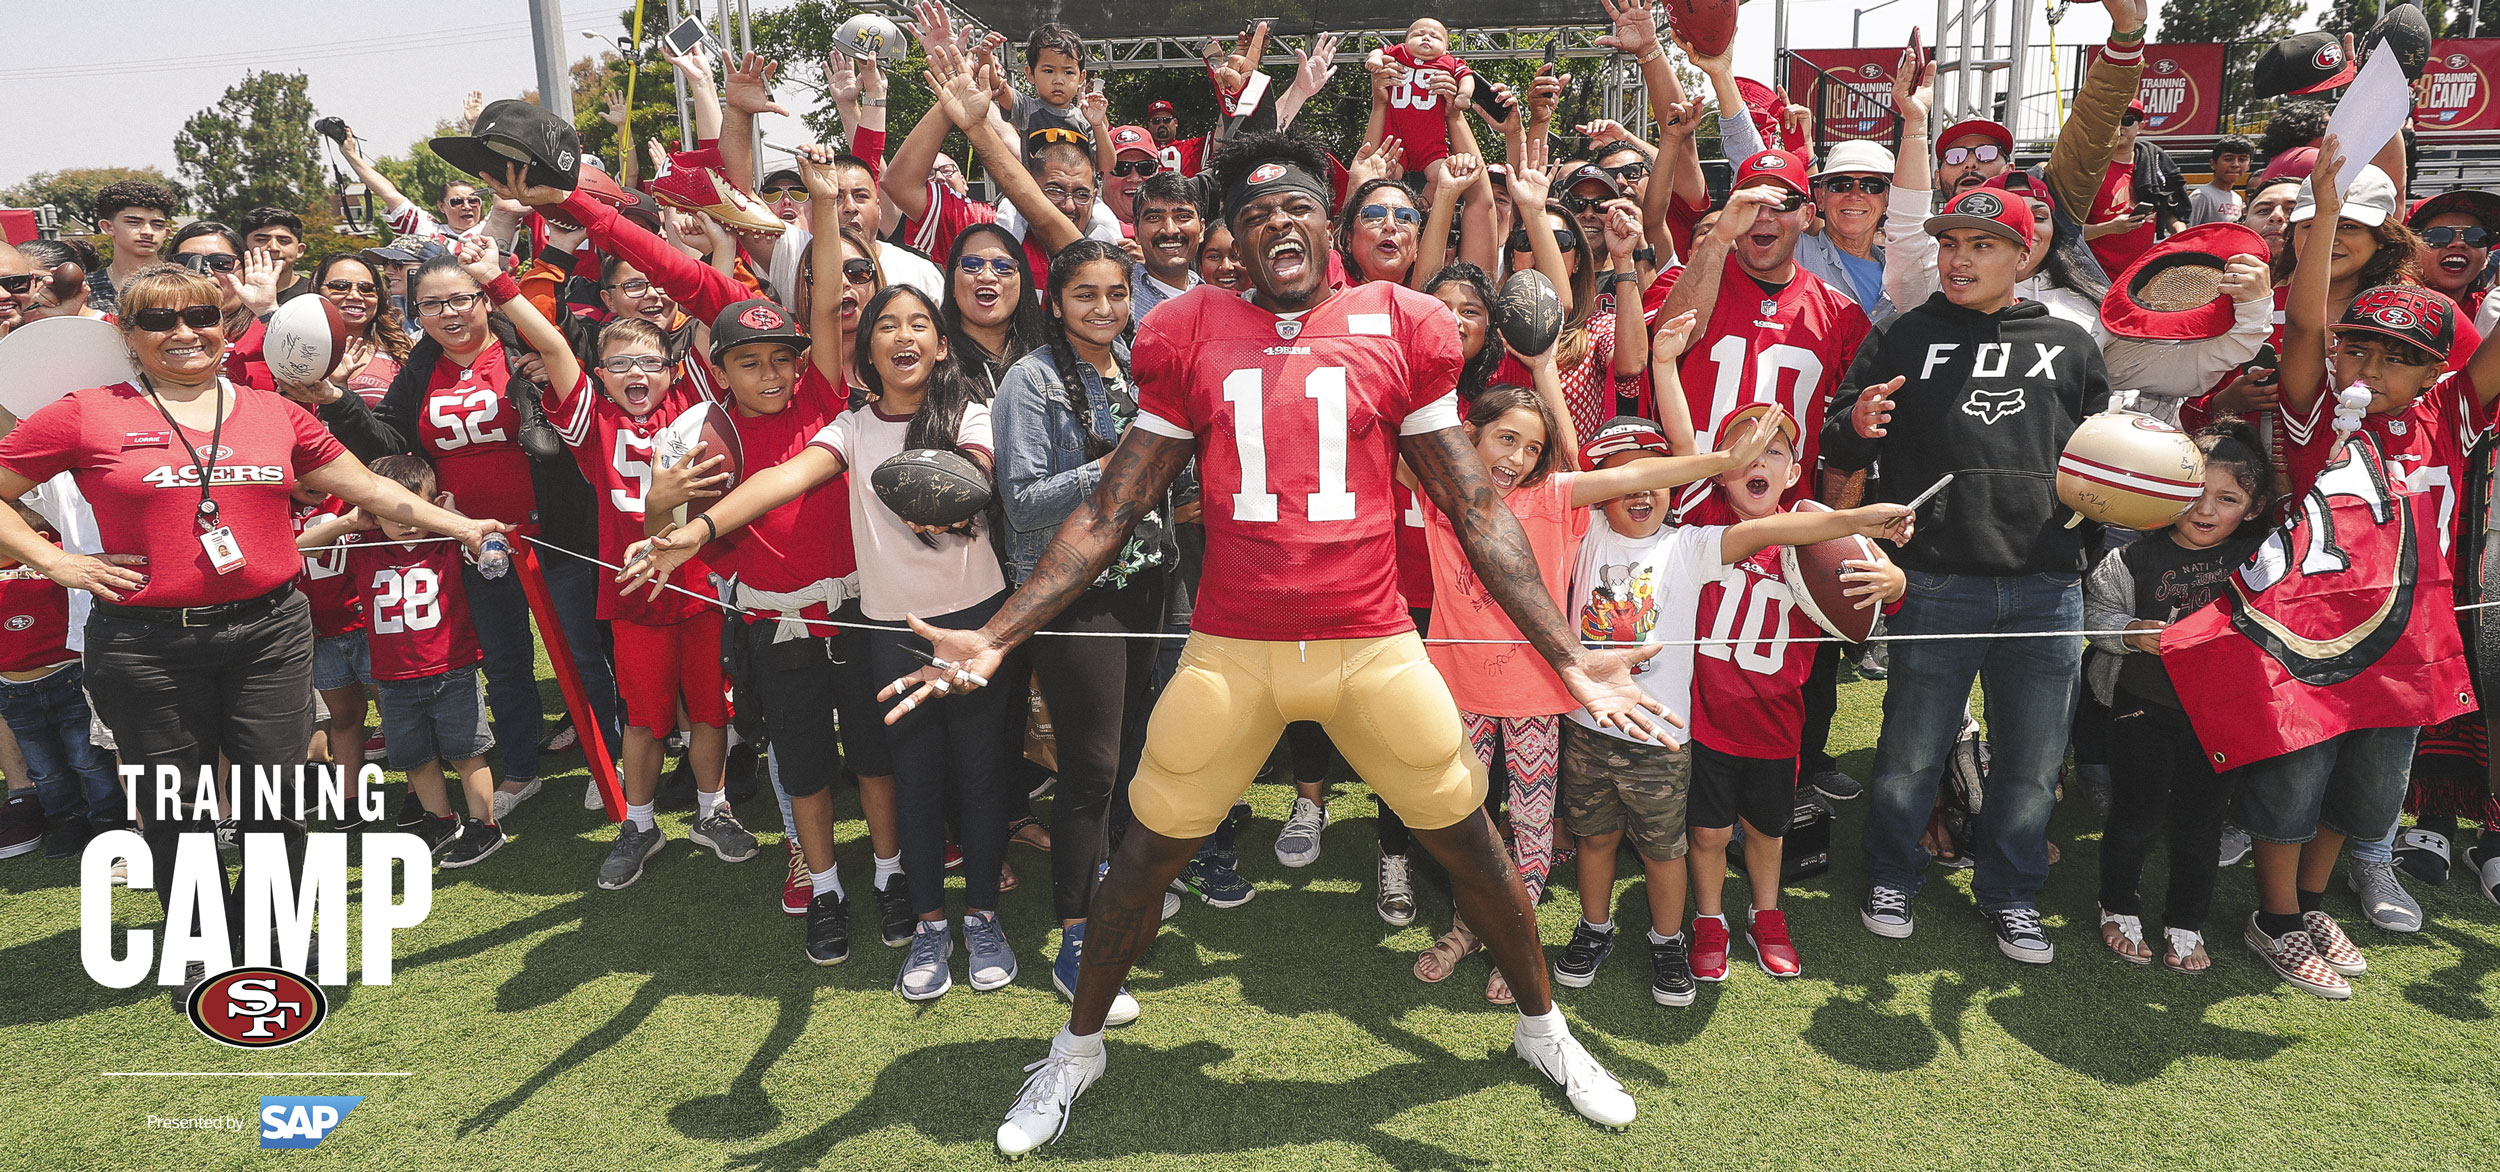 Click Here to Get Caught Up with All Things 49ers Training Camp Presented by SAP